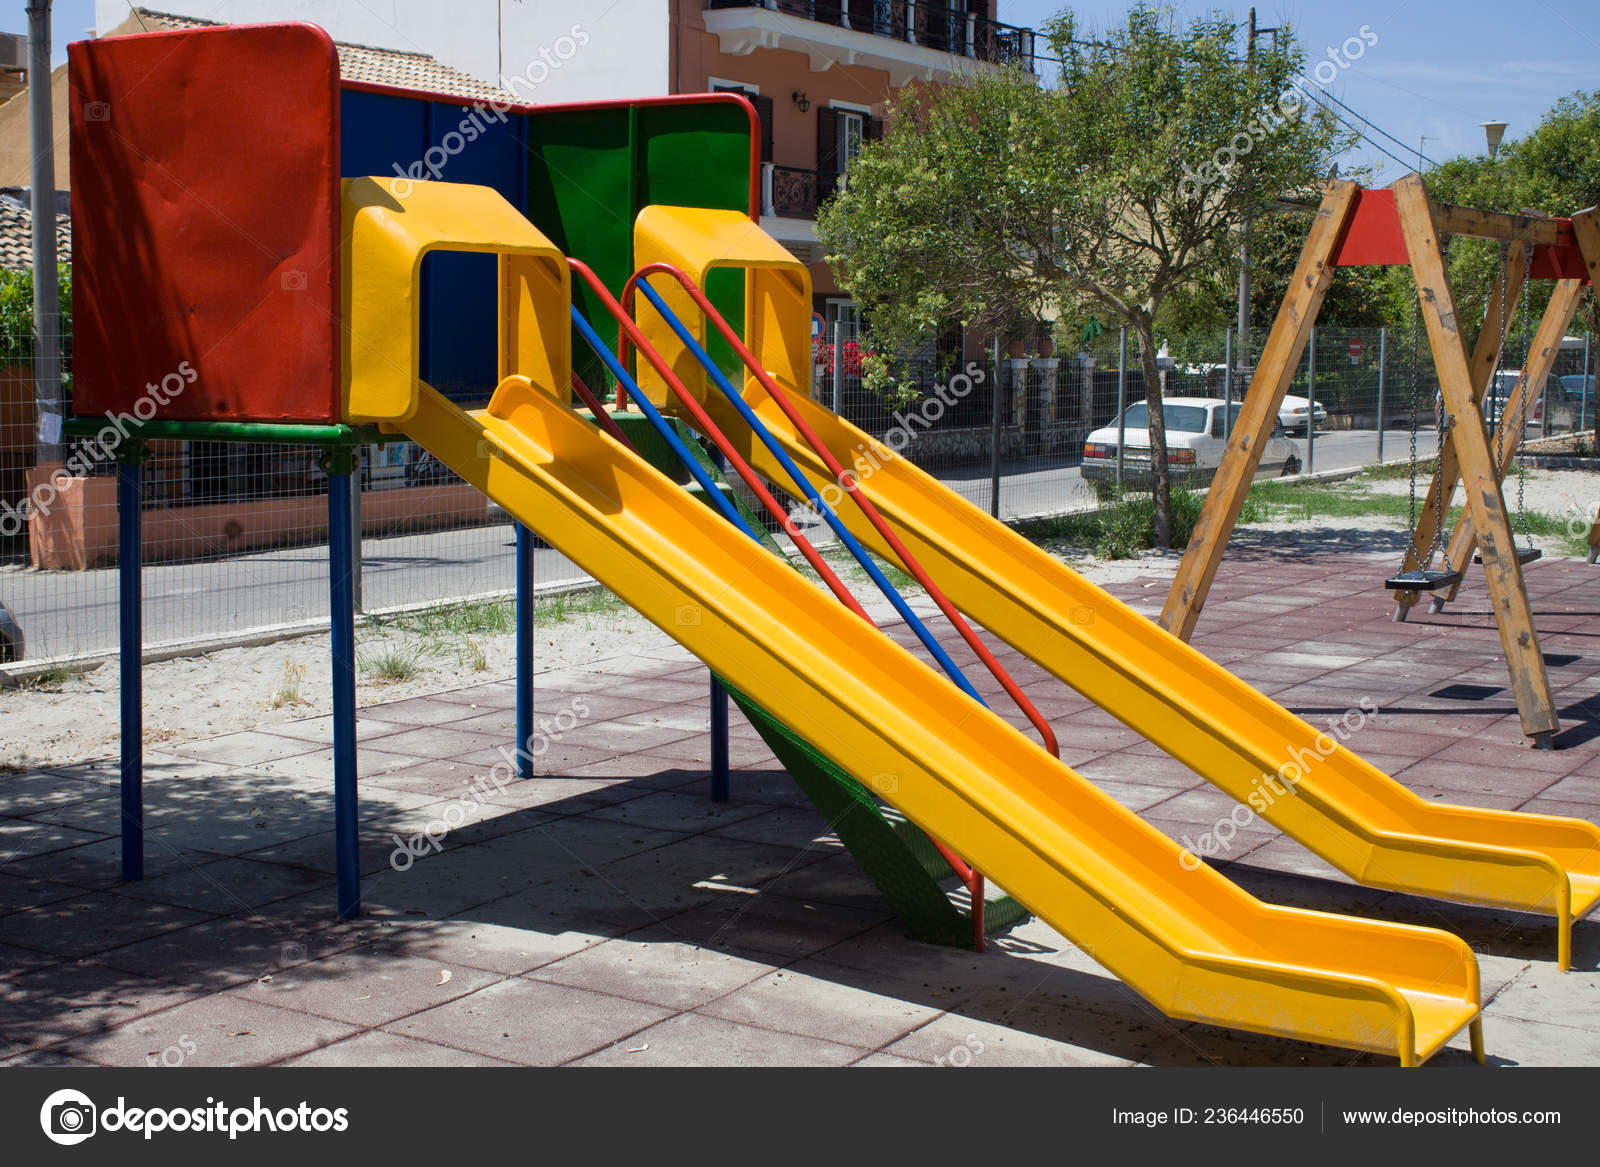 Screened Playground With Two Colorful Slides And Swing